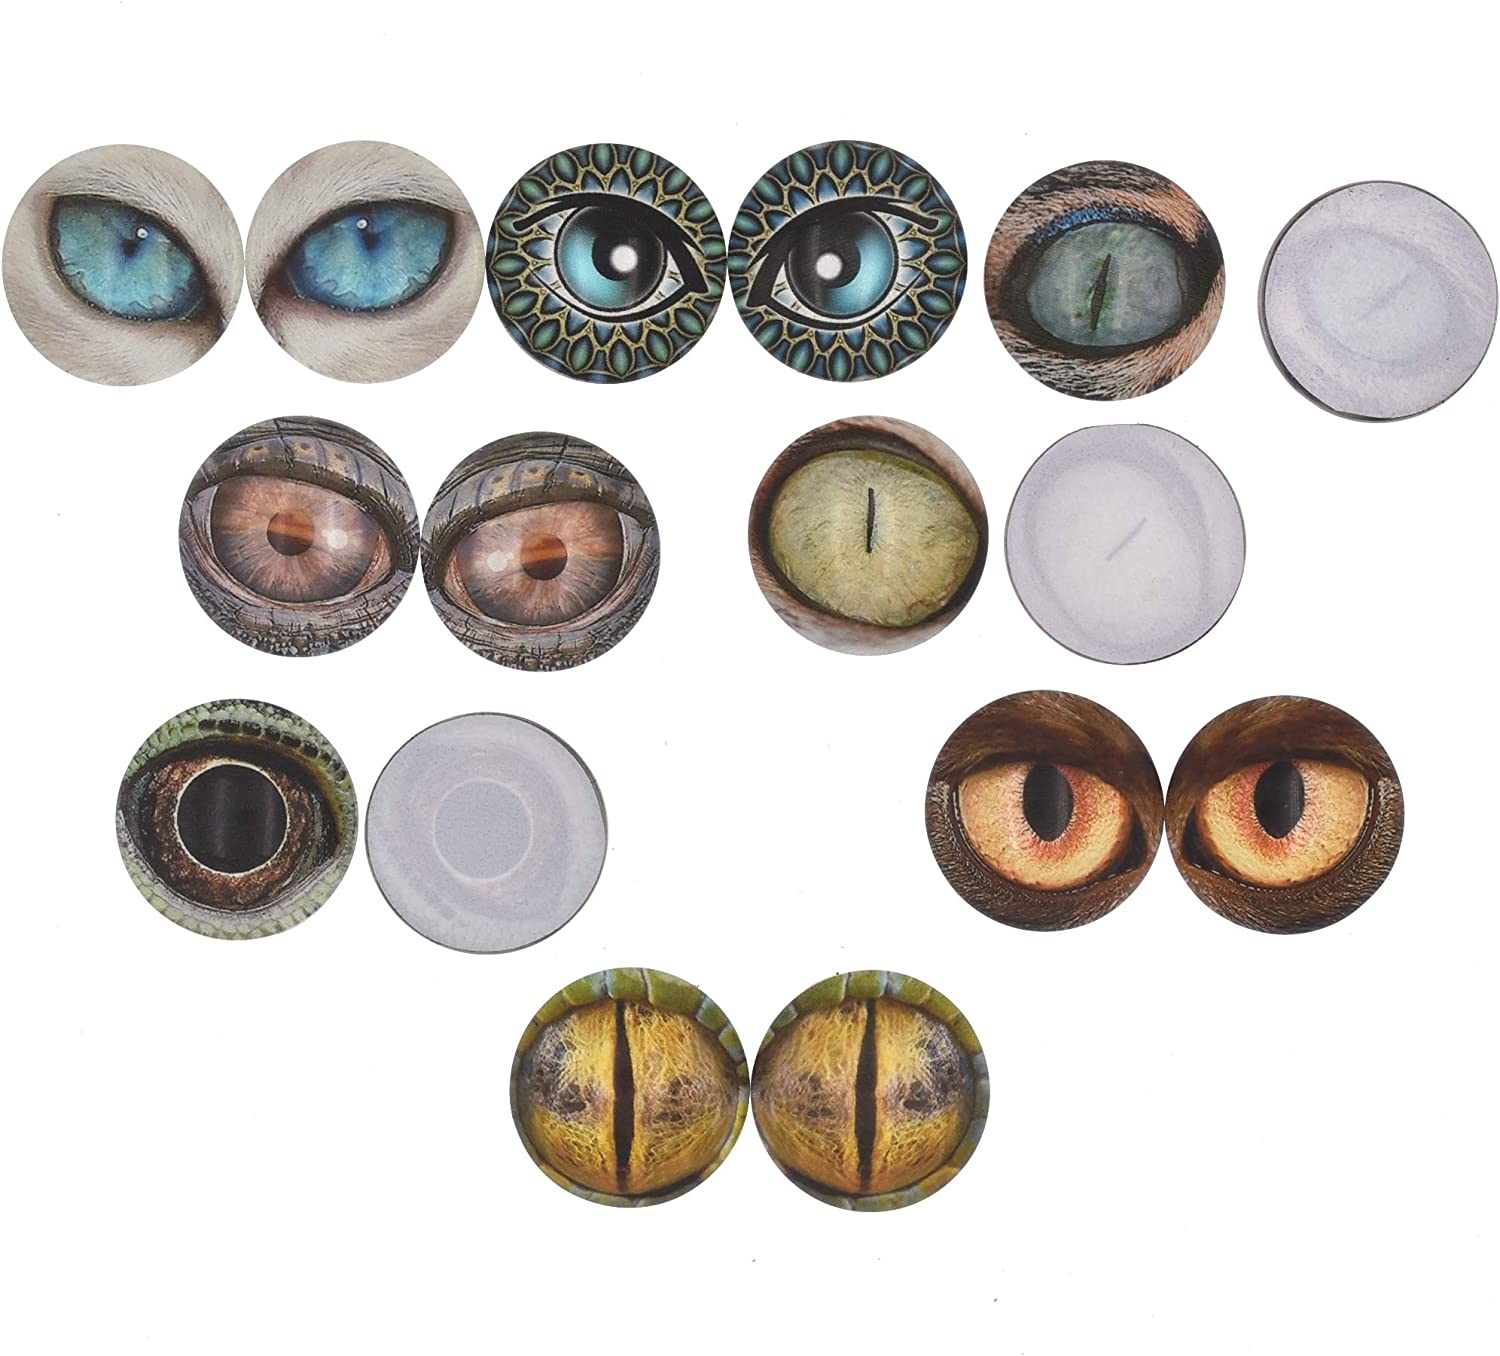 14mm Qeesio 10 Pairs 14mm Glow in the Dark Glass Animal Eyes Round Dome Glass Cabochons Flatback for DIY Craft Clay Eyes